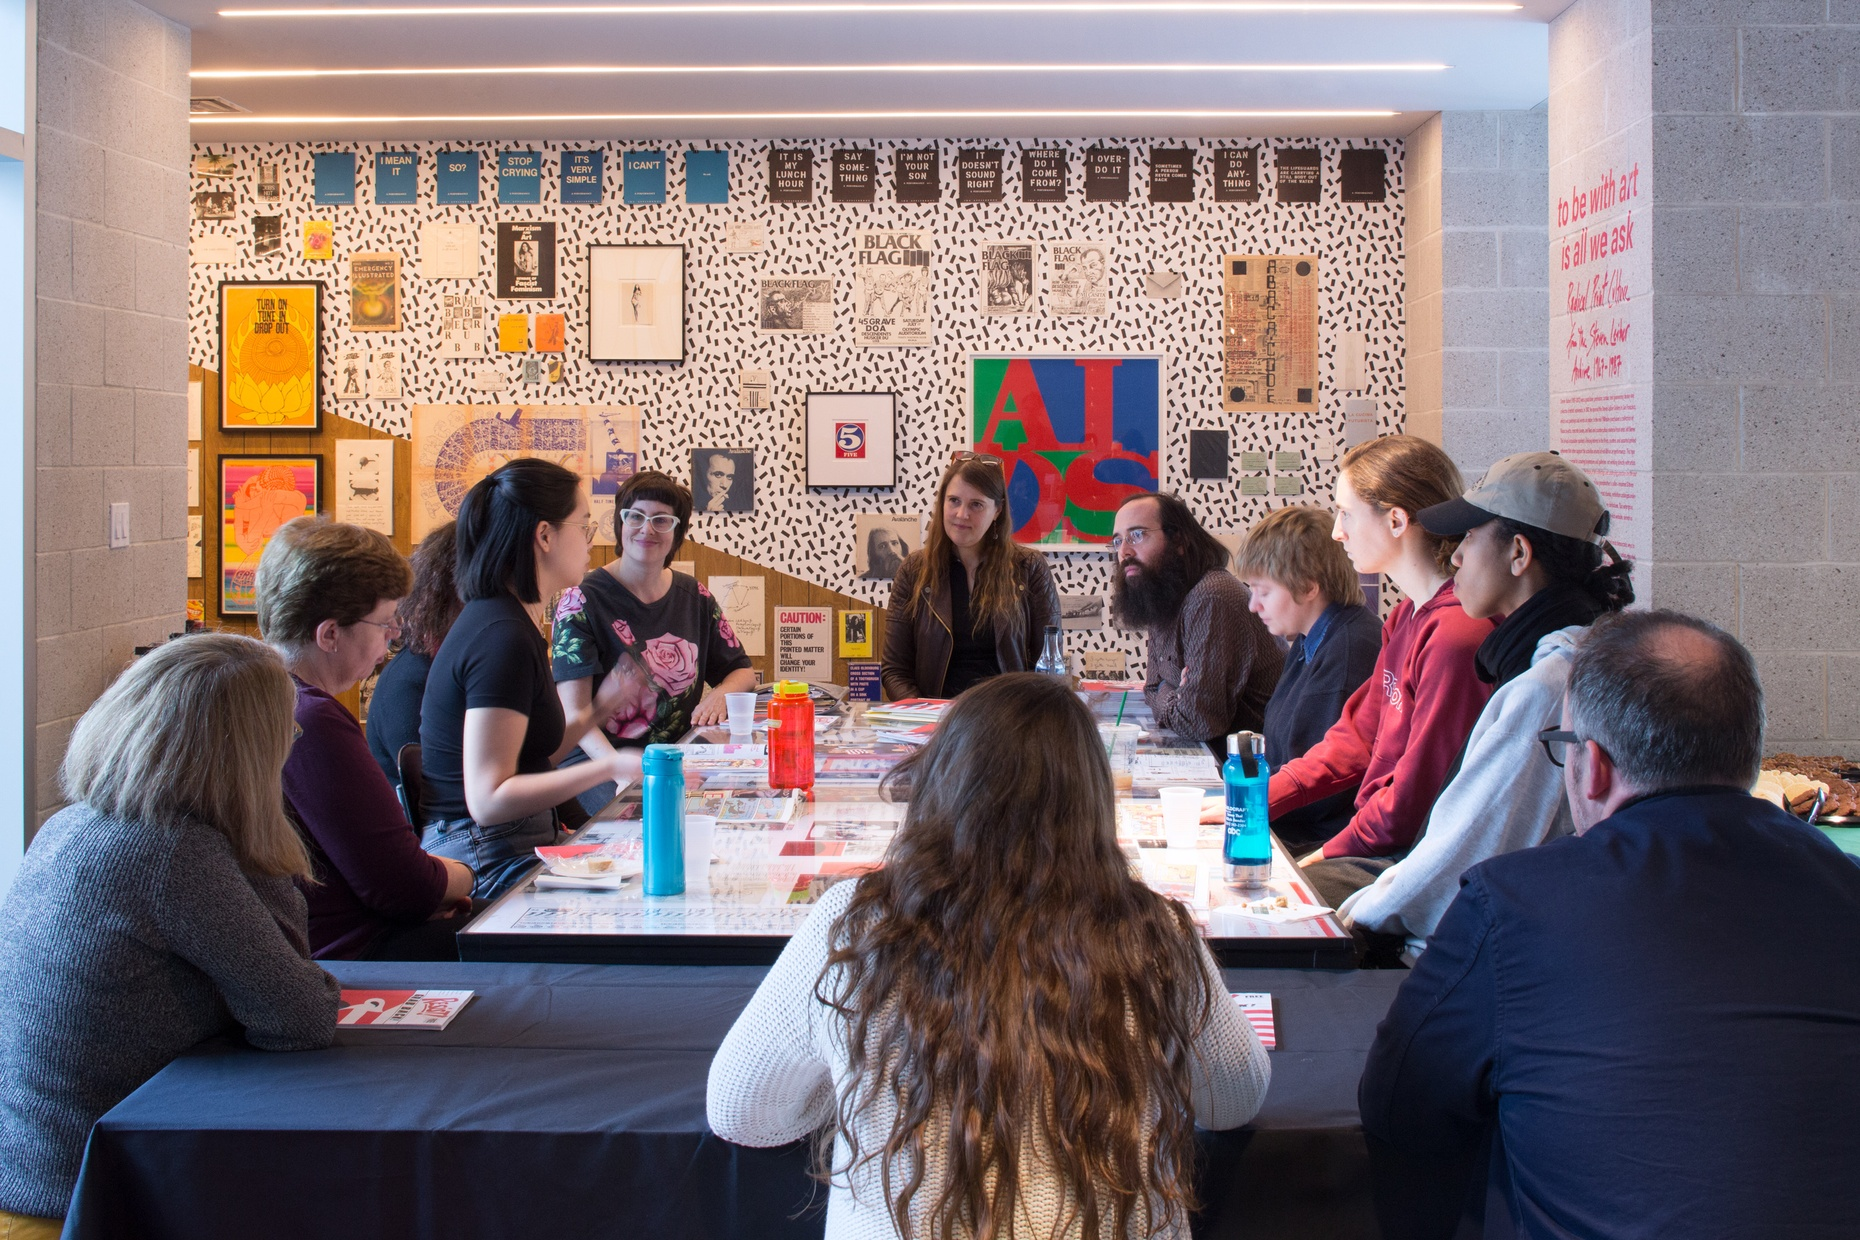 A group of people sit around a table covered with screenprints in front of a black and white polka-dot wall with colorful prints hung on it.